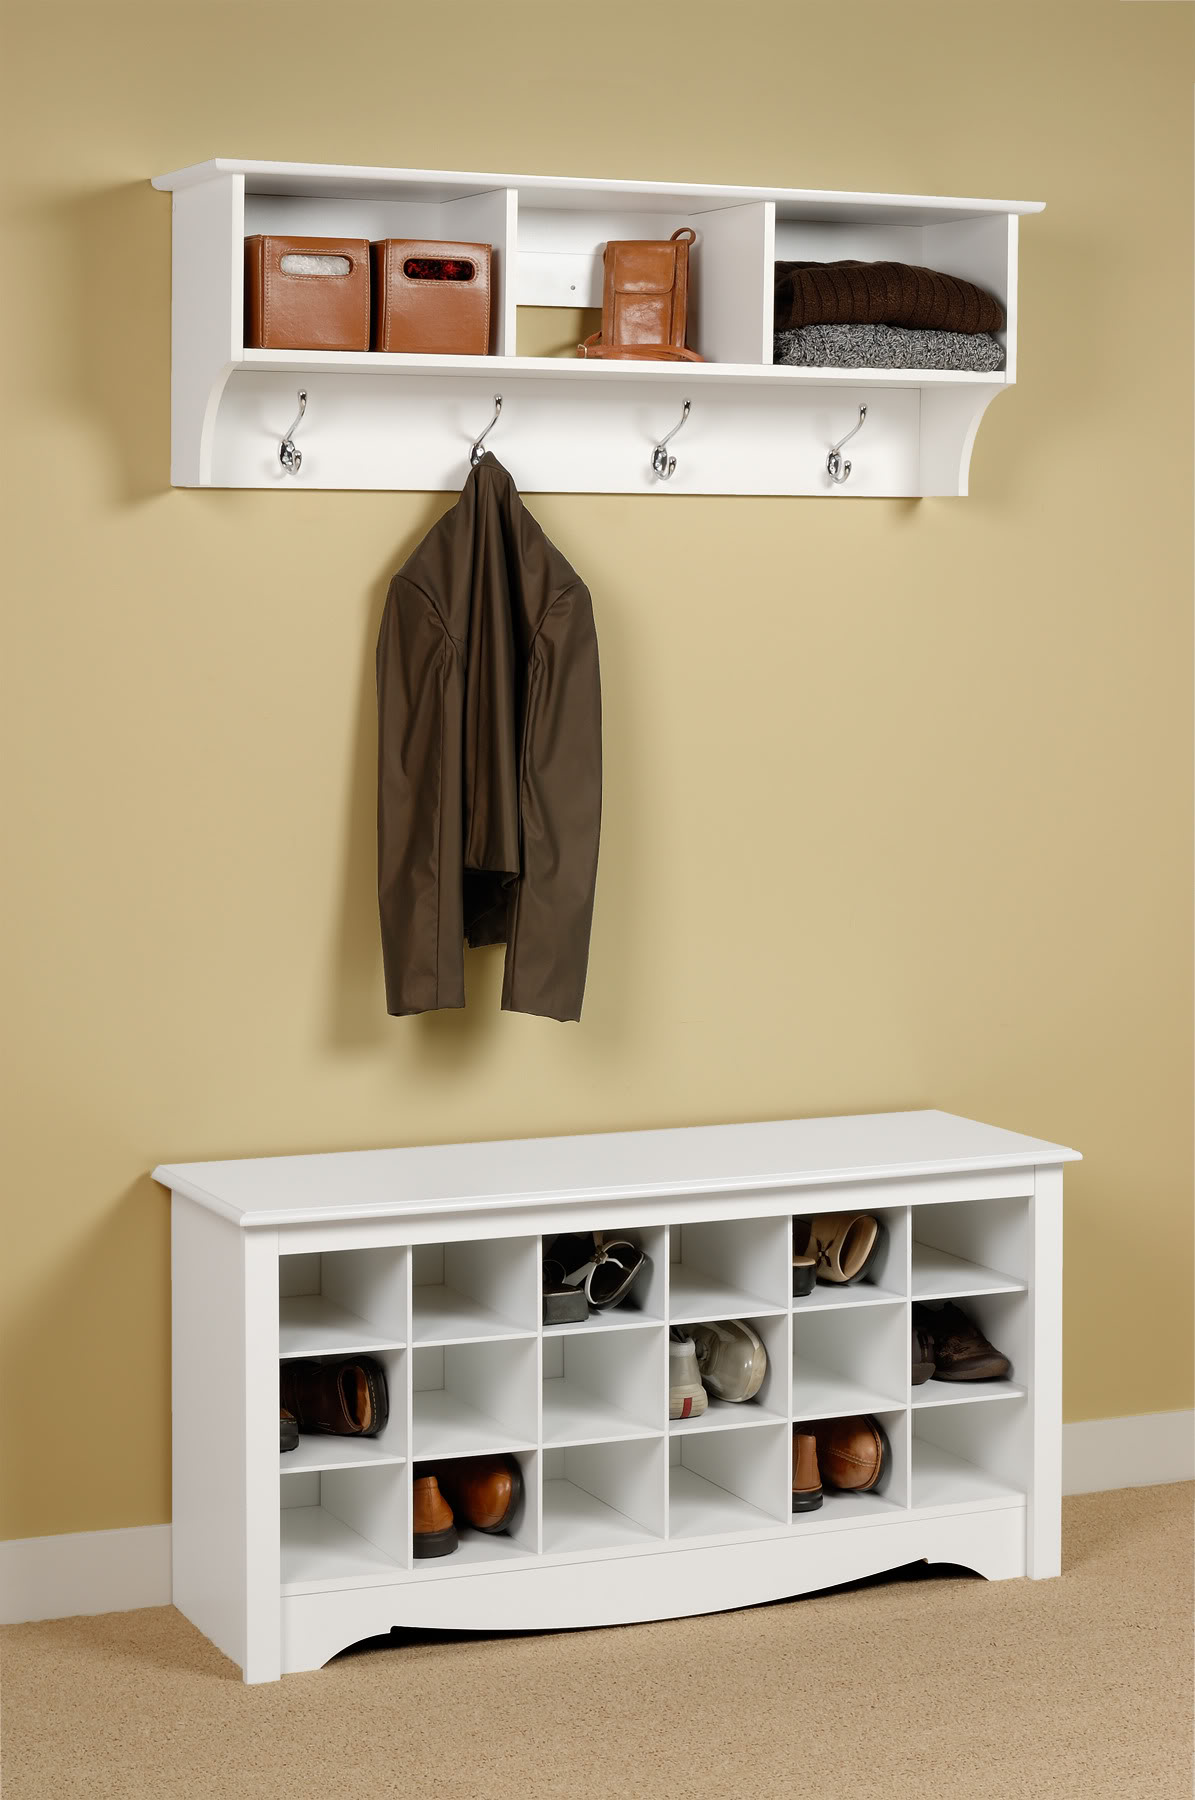 Entryway Shoe Storage Ideas HomesFeed - Shoe cabinets design ideas